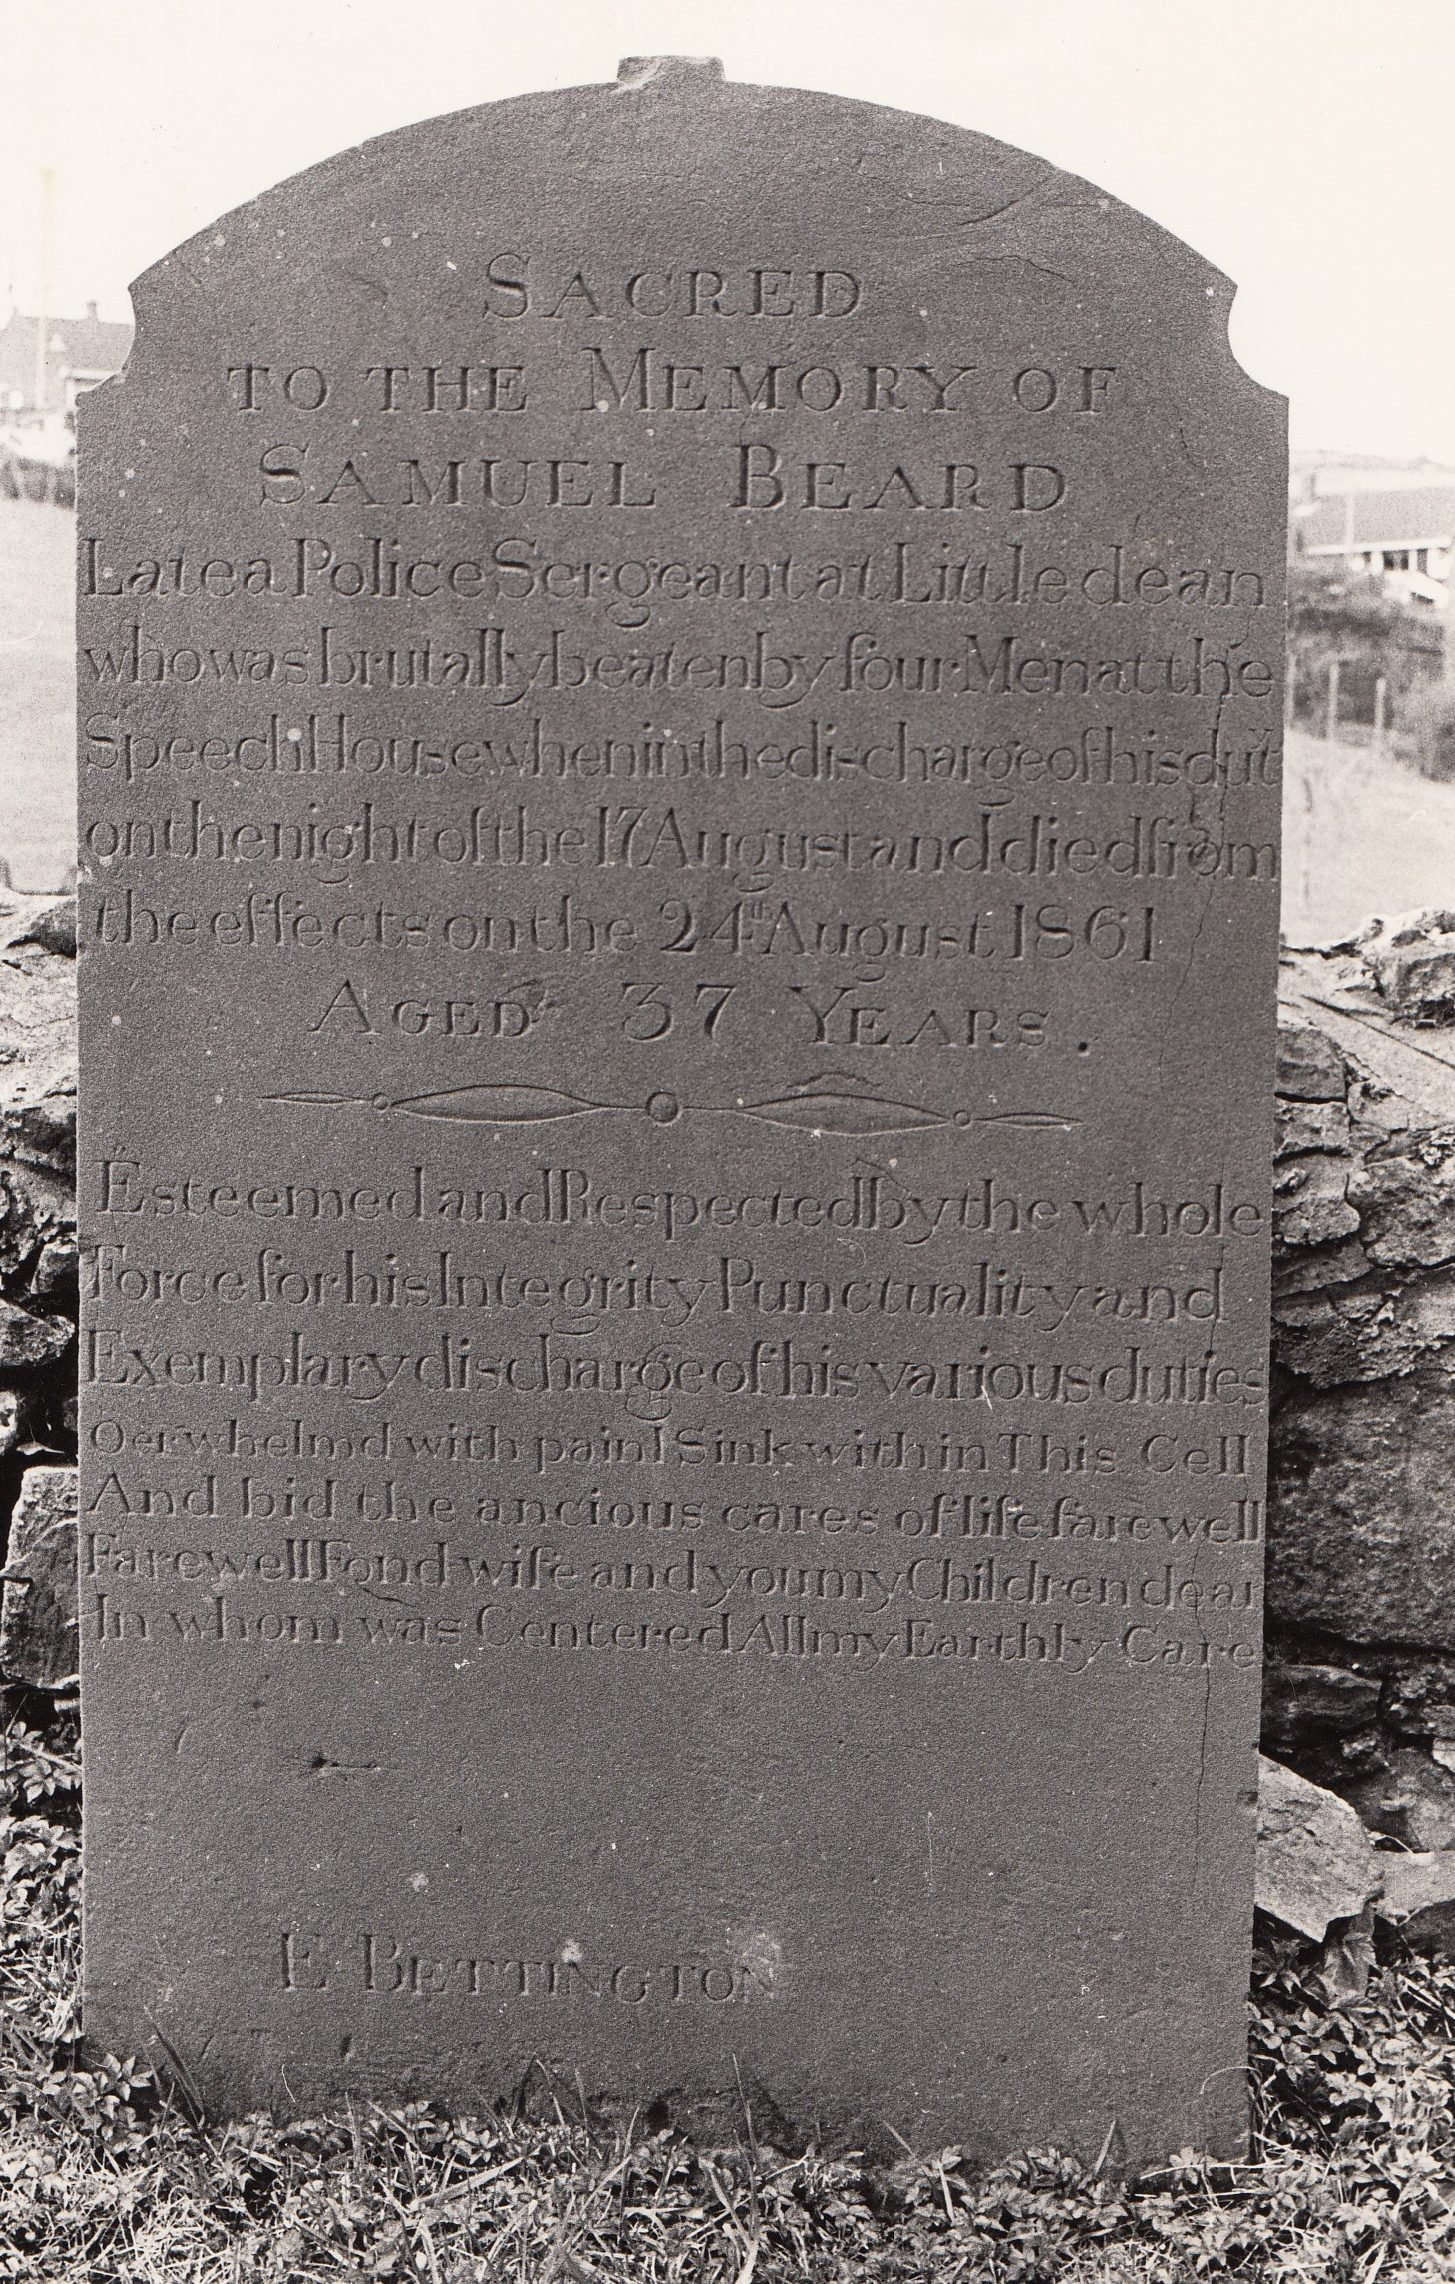 Gravestone of Sergeant Samuel Beard murdered in the Forest of Dean.